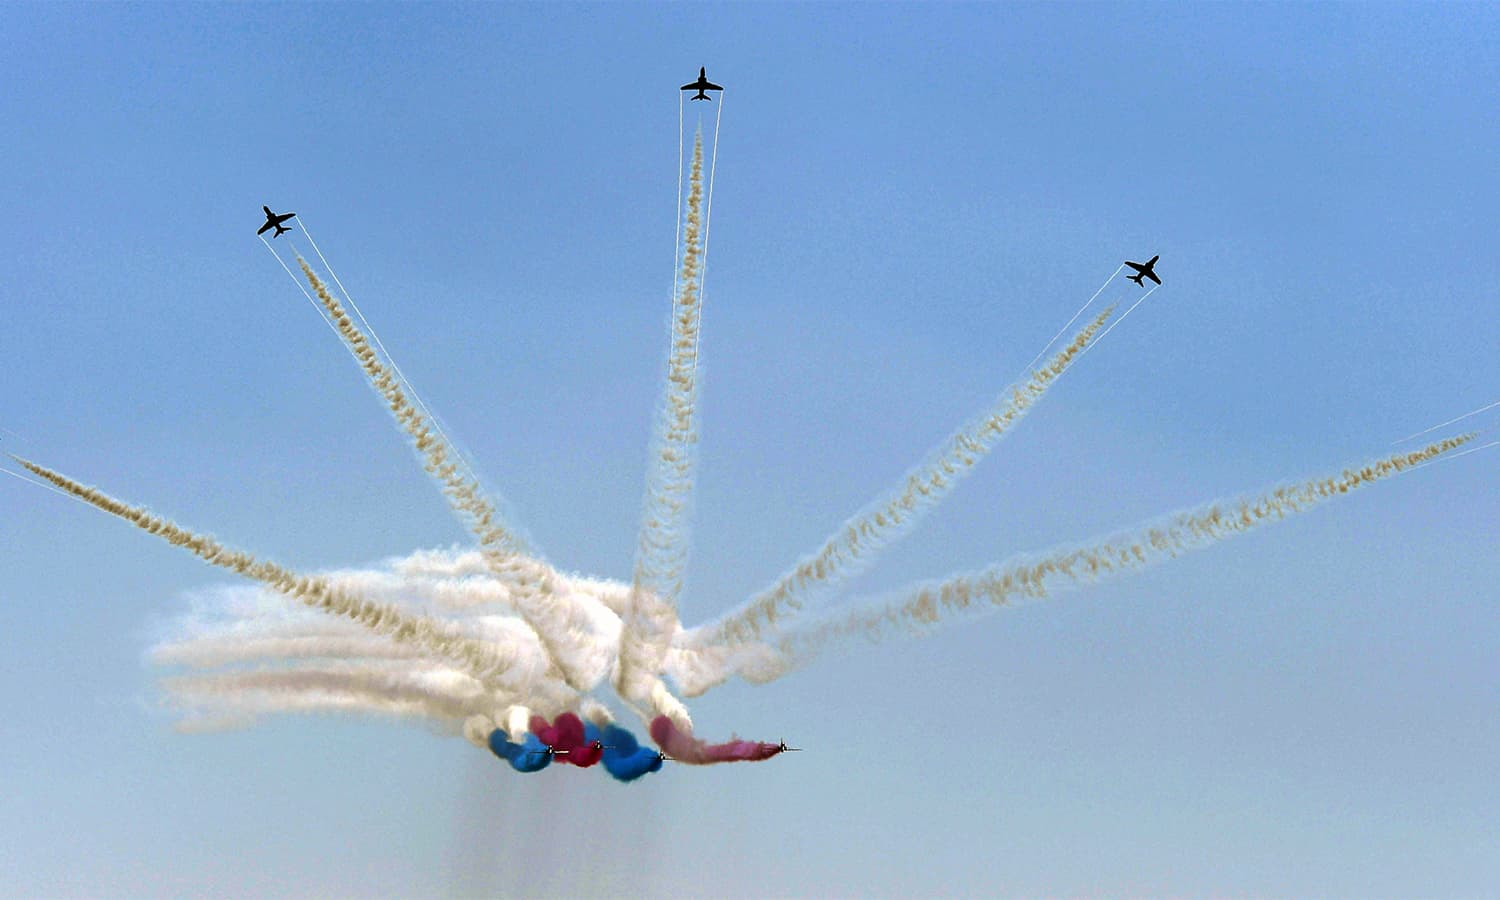 The RAF aerobatic team, the 'Red Arrows', performs aerial manoeuvres during an airshow at Sea View in Karachi. — AFP